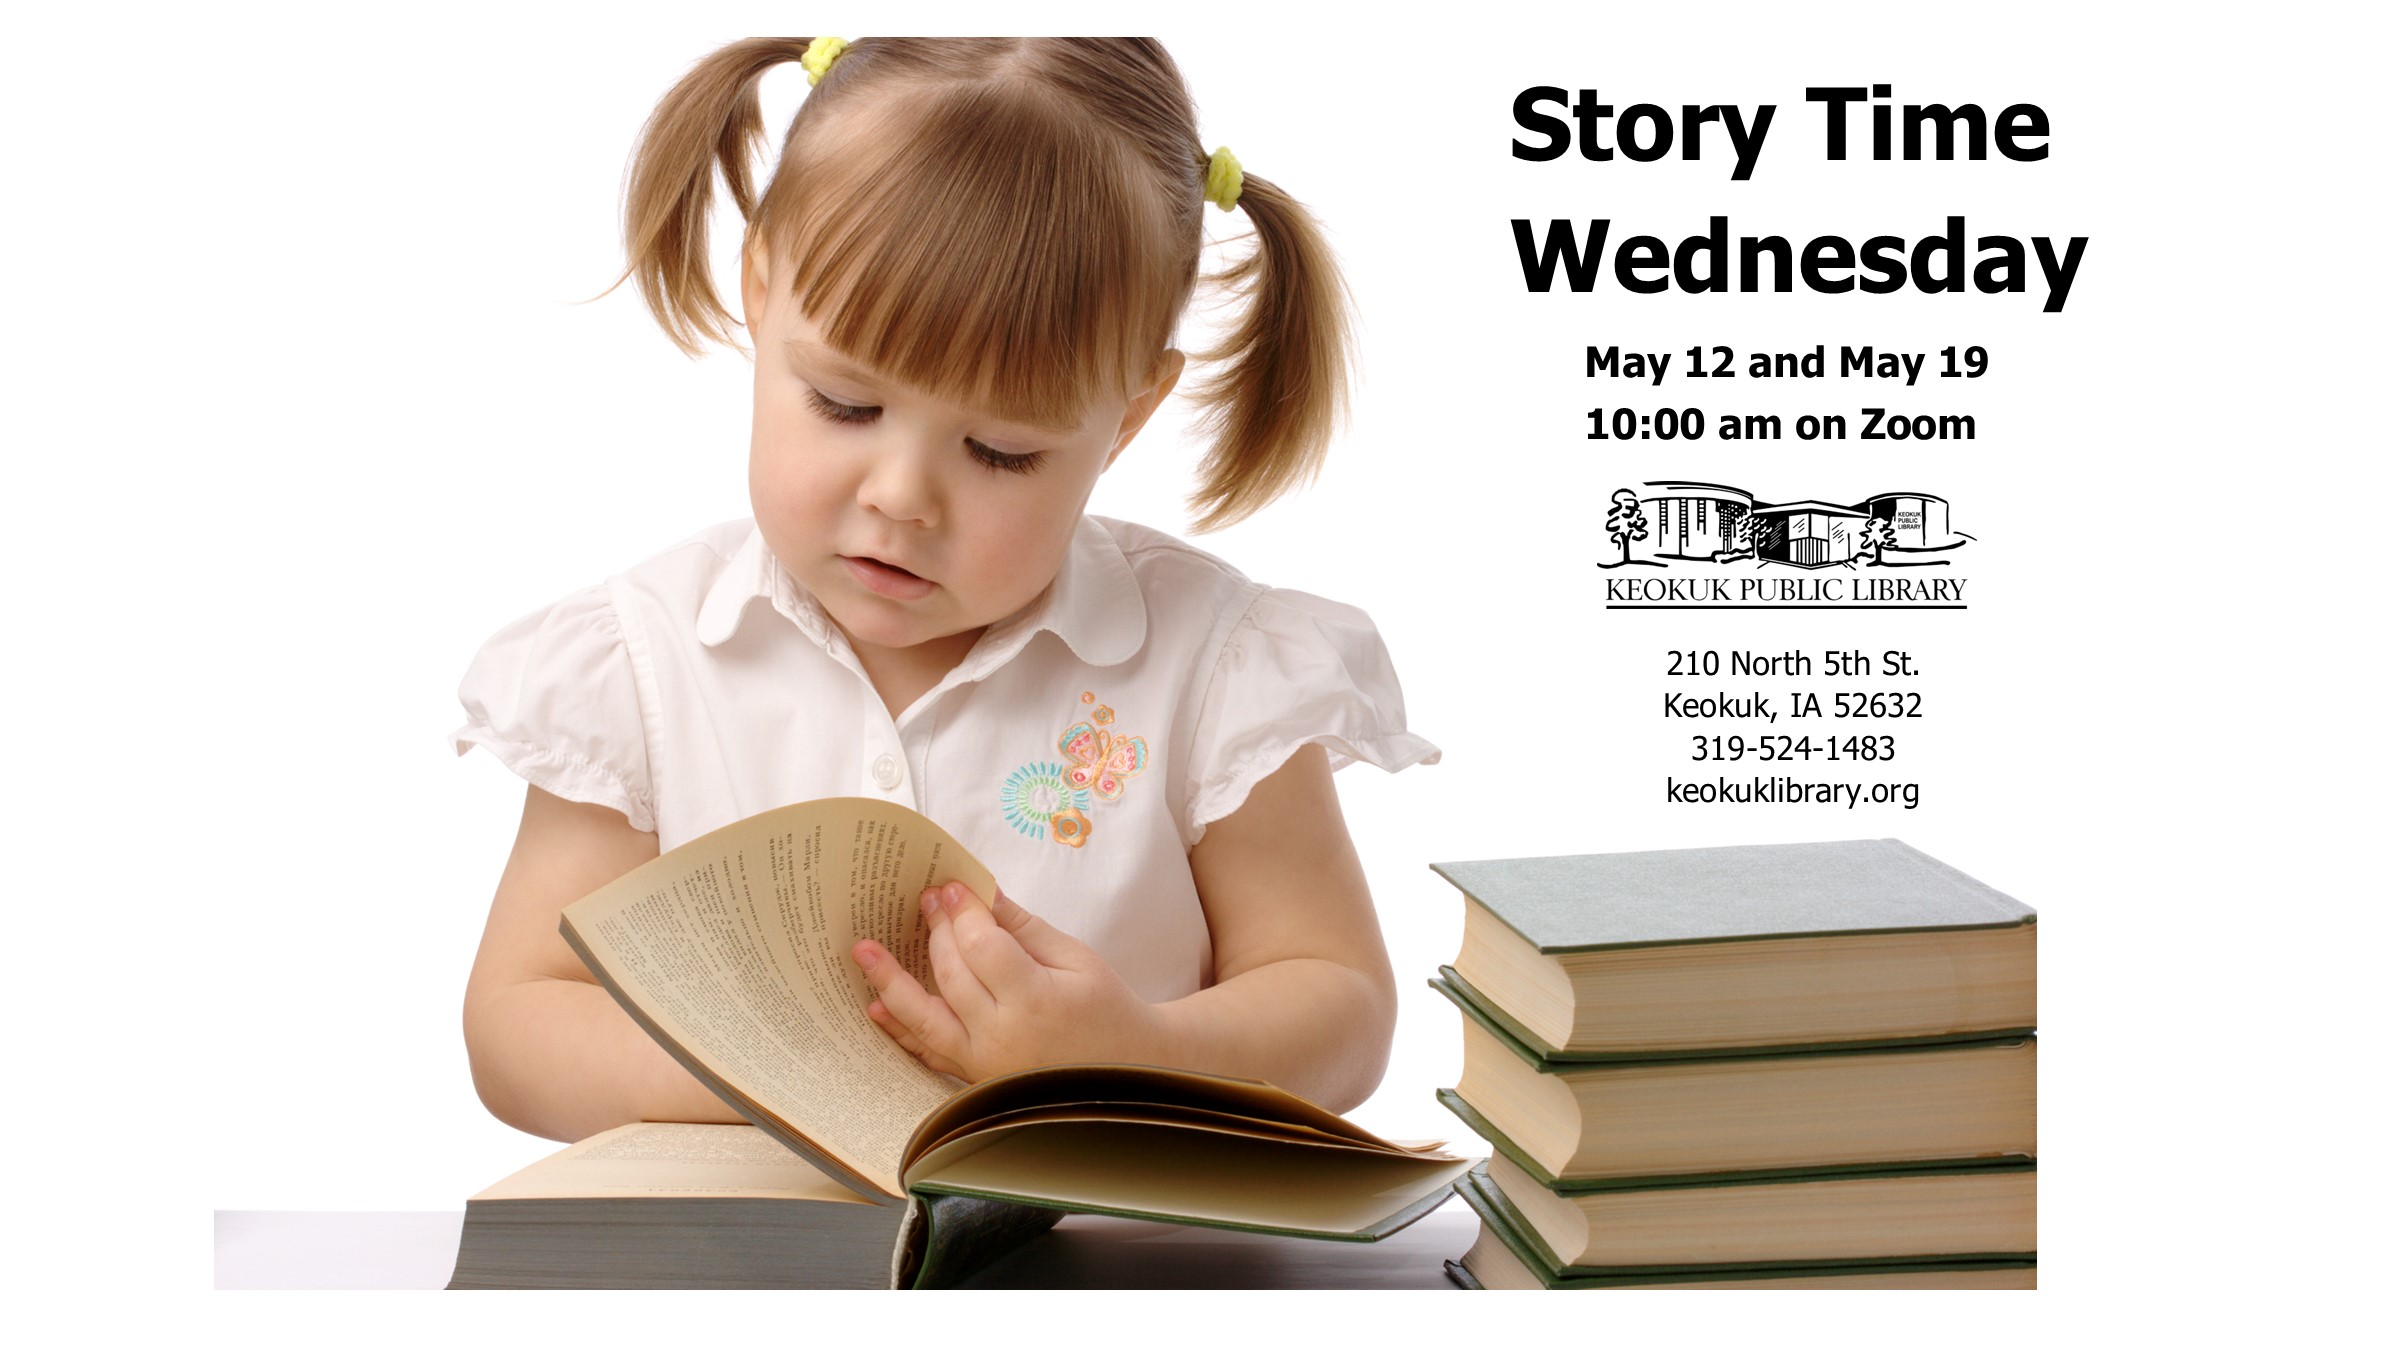 Wednesday Story Time